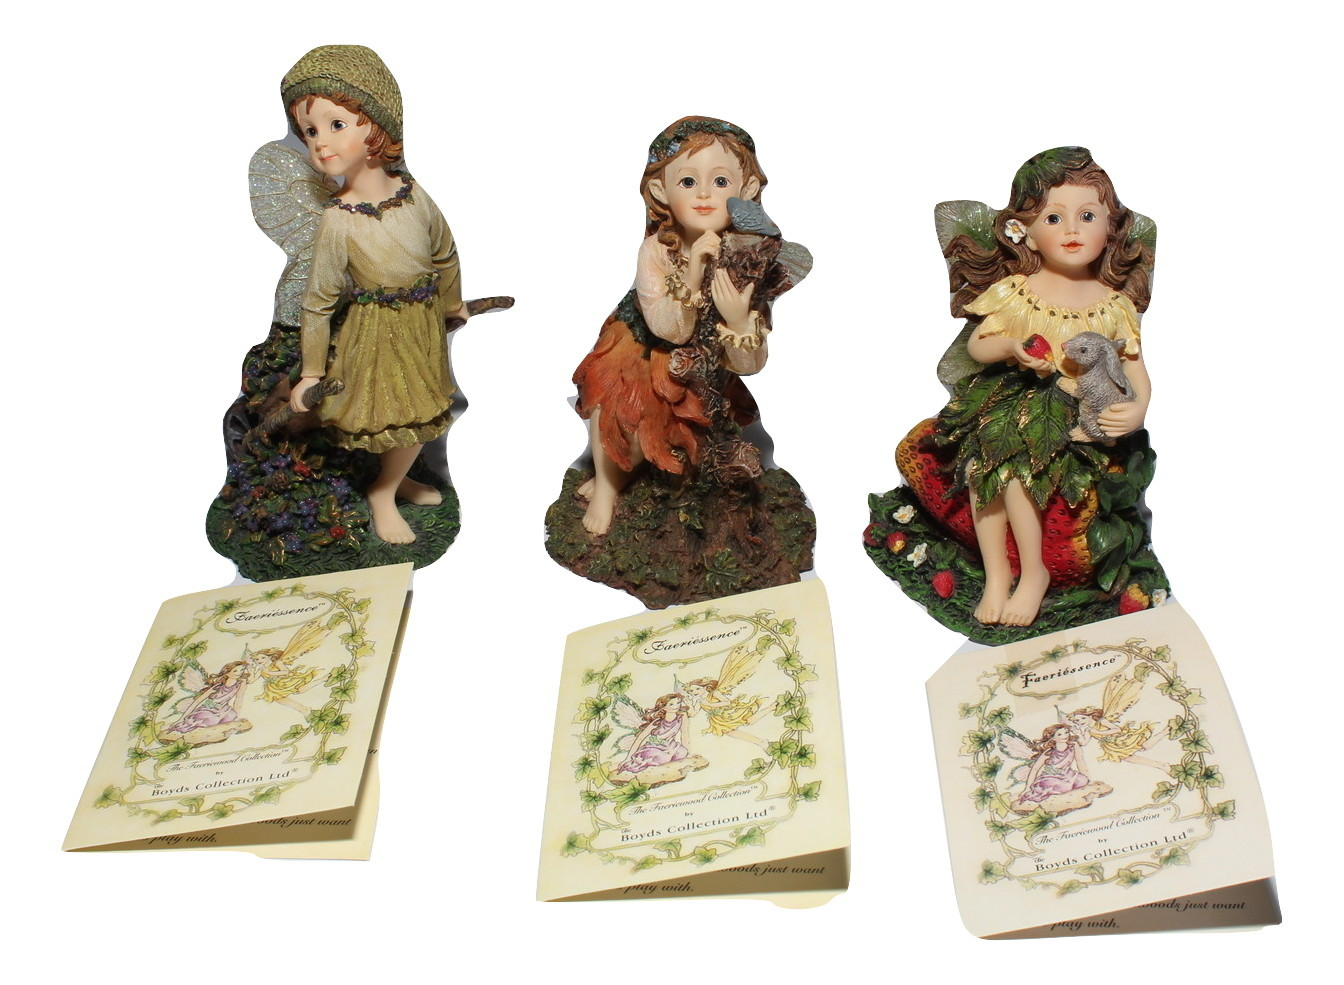 Faeriessence The Faeriewood Collection Serenity Faerieperch...Quiet Time 36022 - $49.97